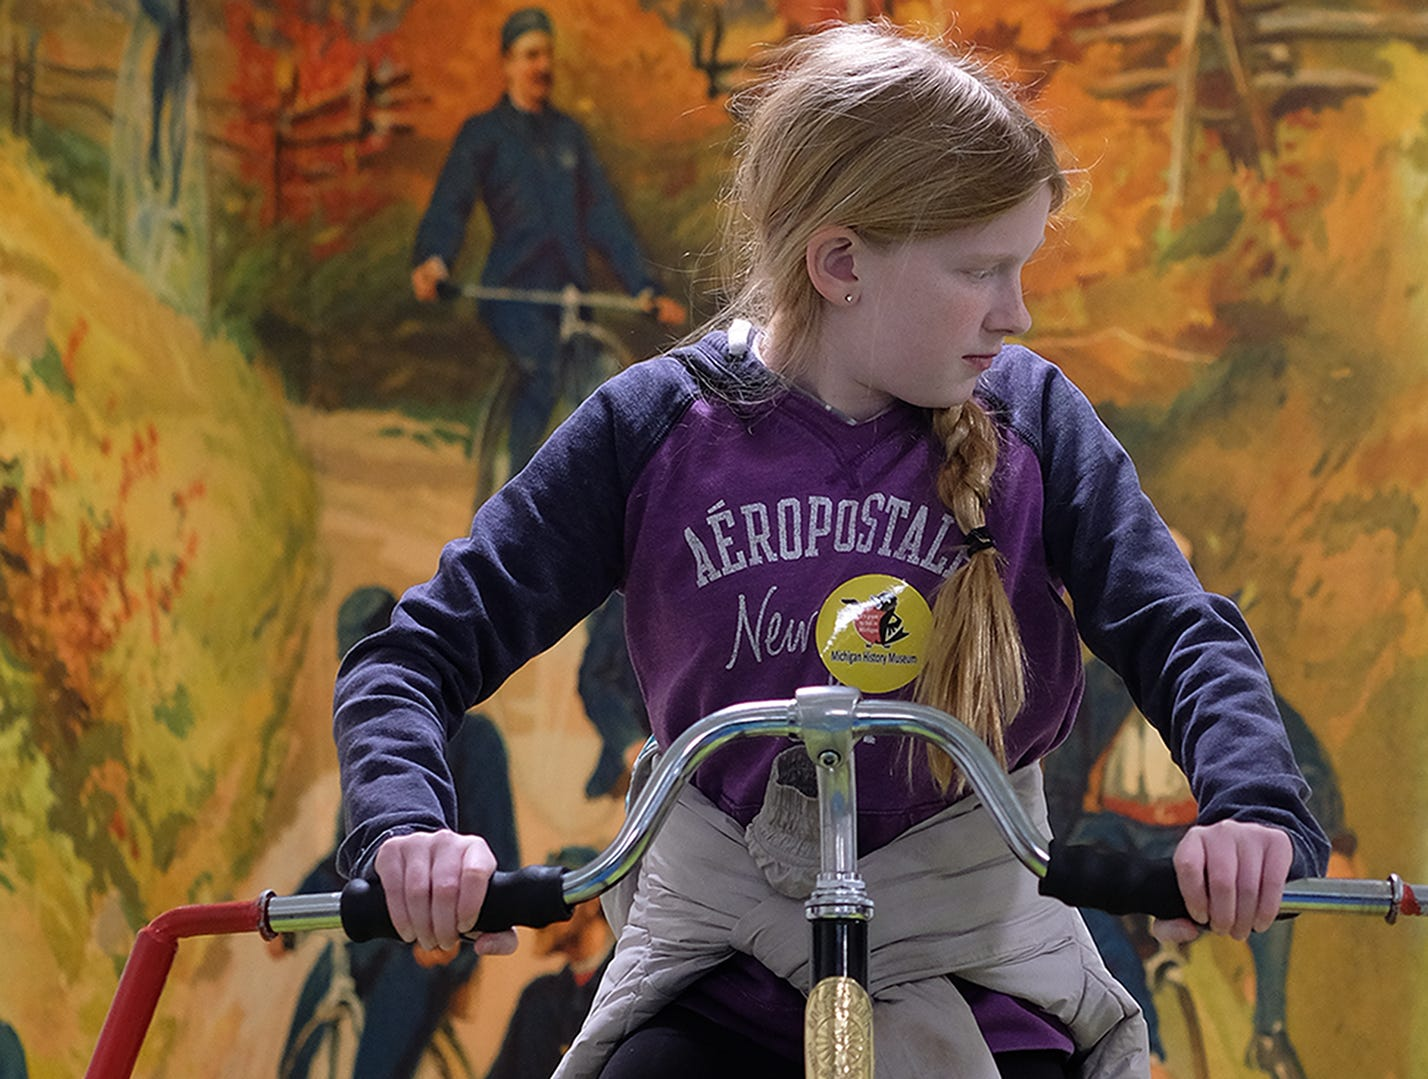 Ruby Francis, 11, from St. Joseph, rides the tall bike at the Welcome to Statehood Day 2019 event at the Michigan Library and Historical Center Saturday, Jan. 26, 2019. Michigan became a state on this day in 1837.